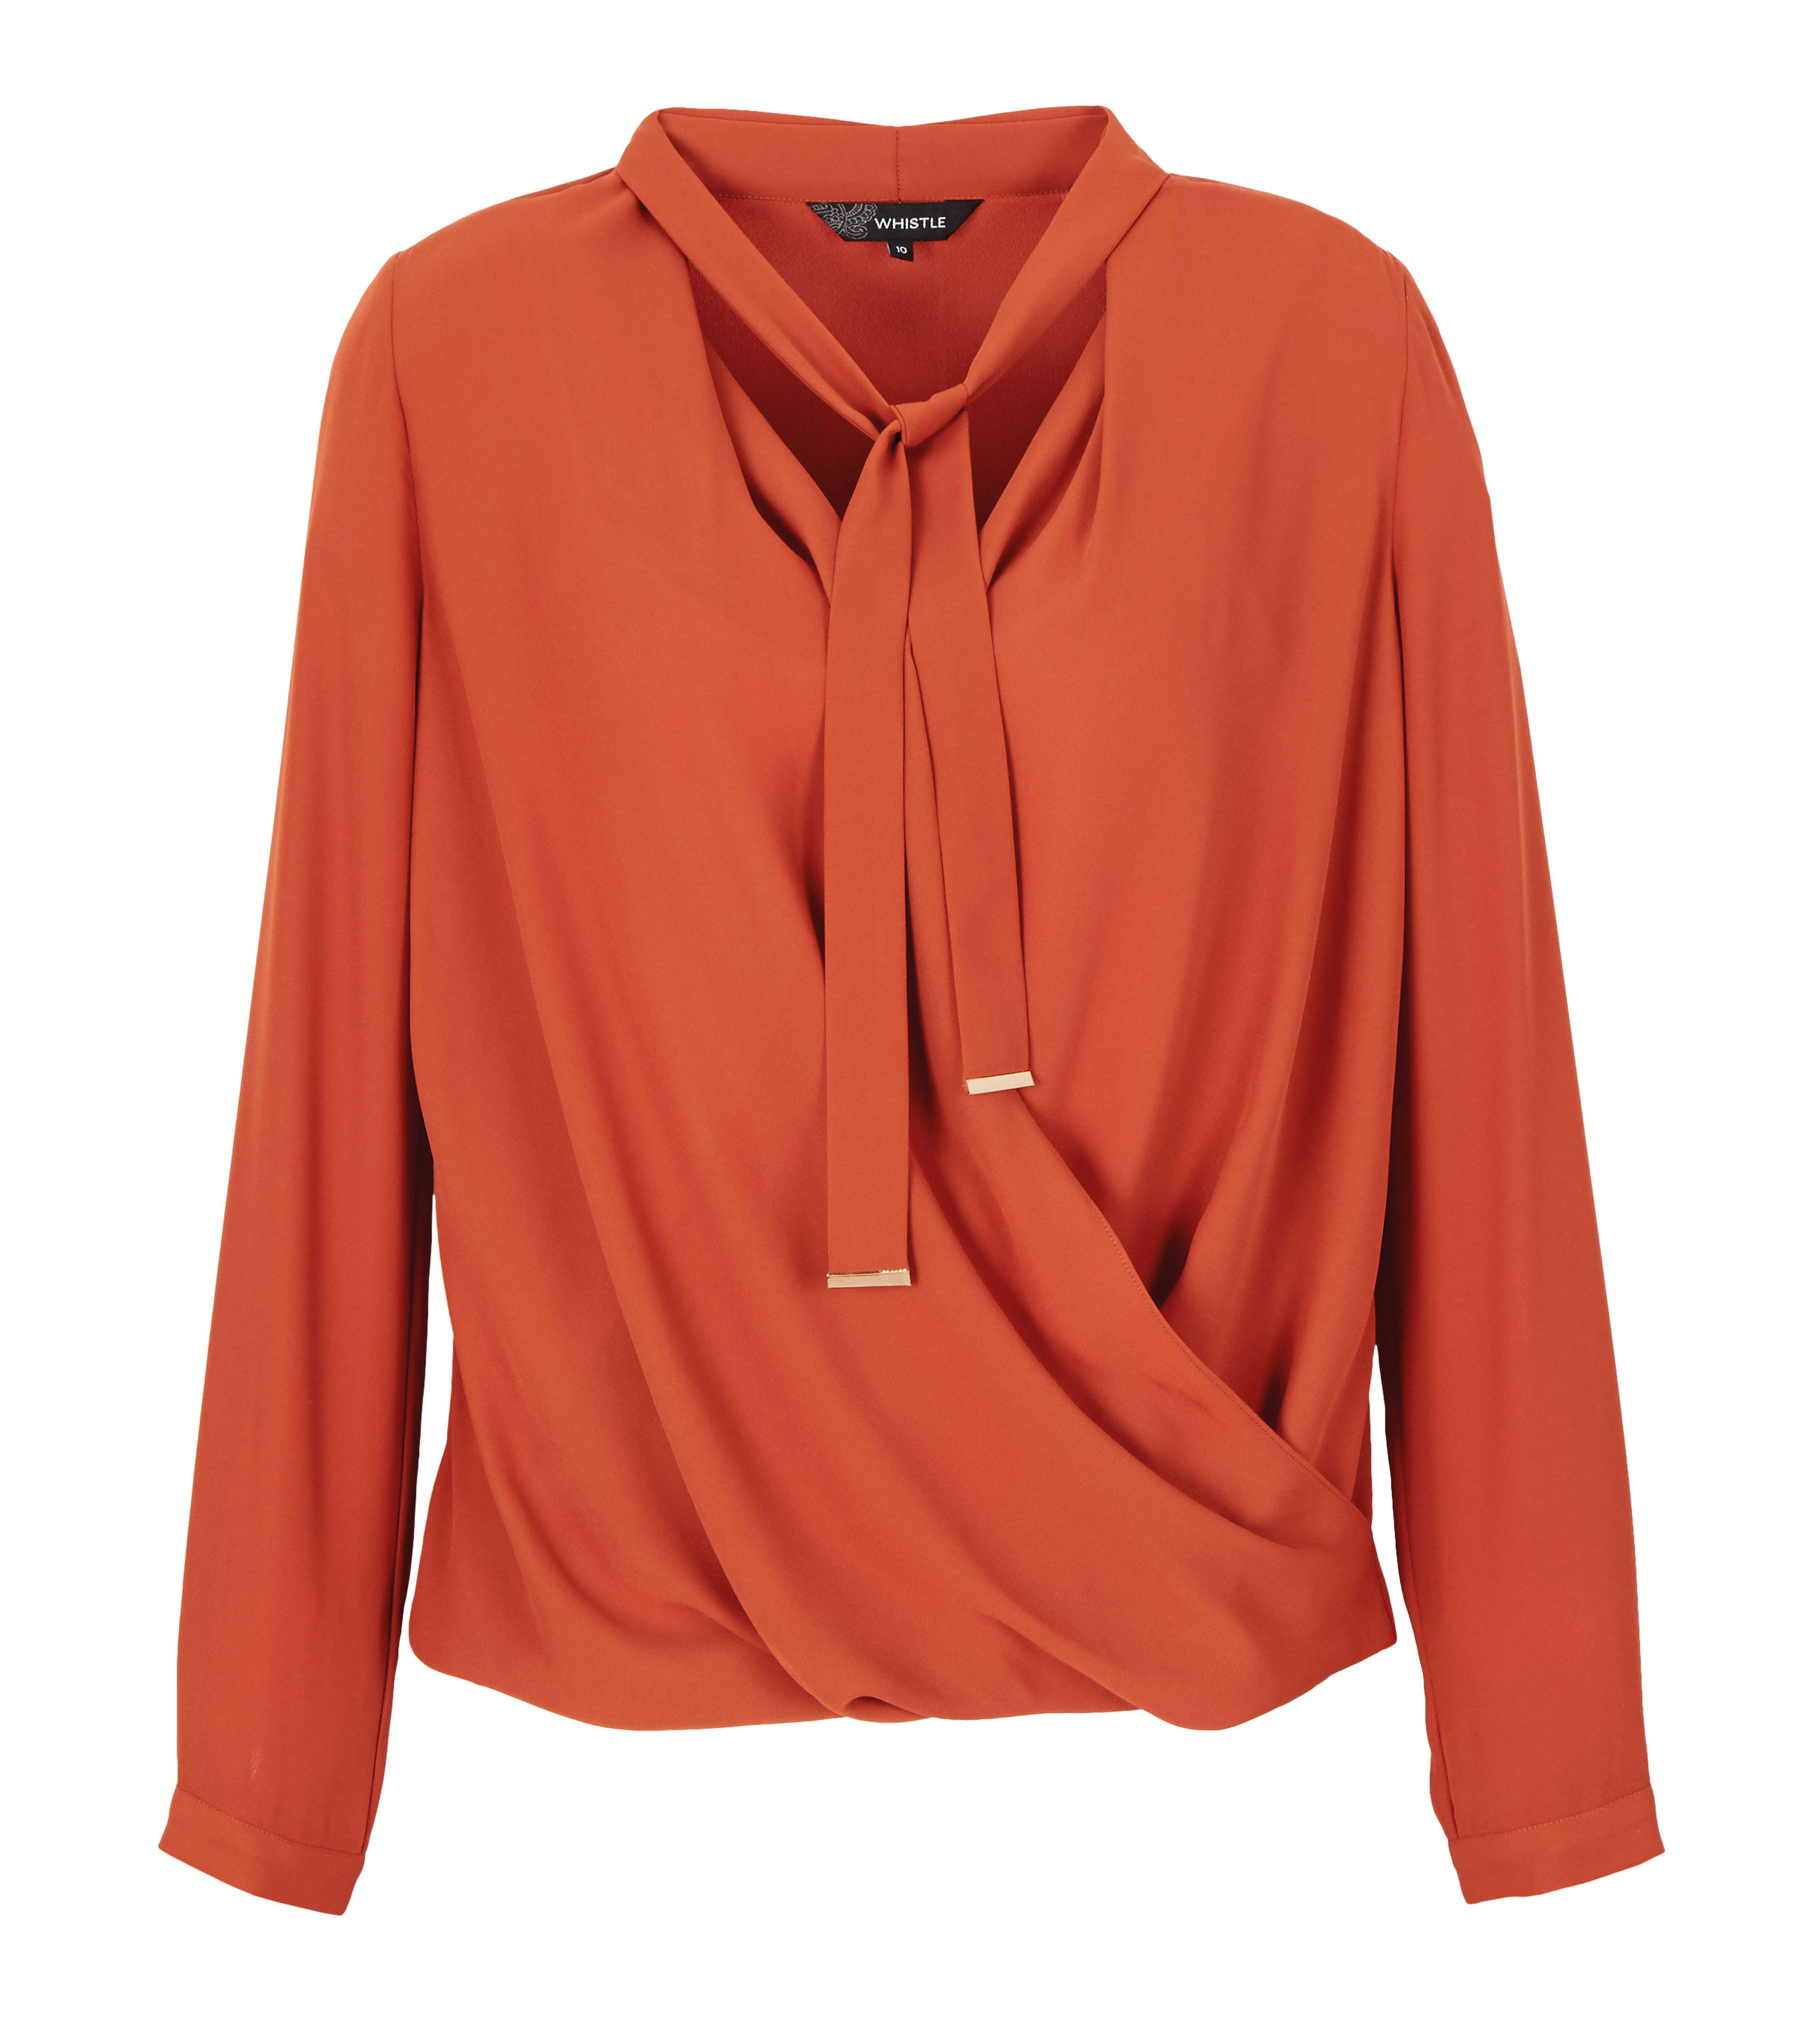 6089465 Whistle Wrap Front Blouse $59.99 Instore March 01 2016